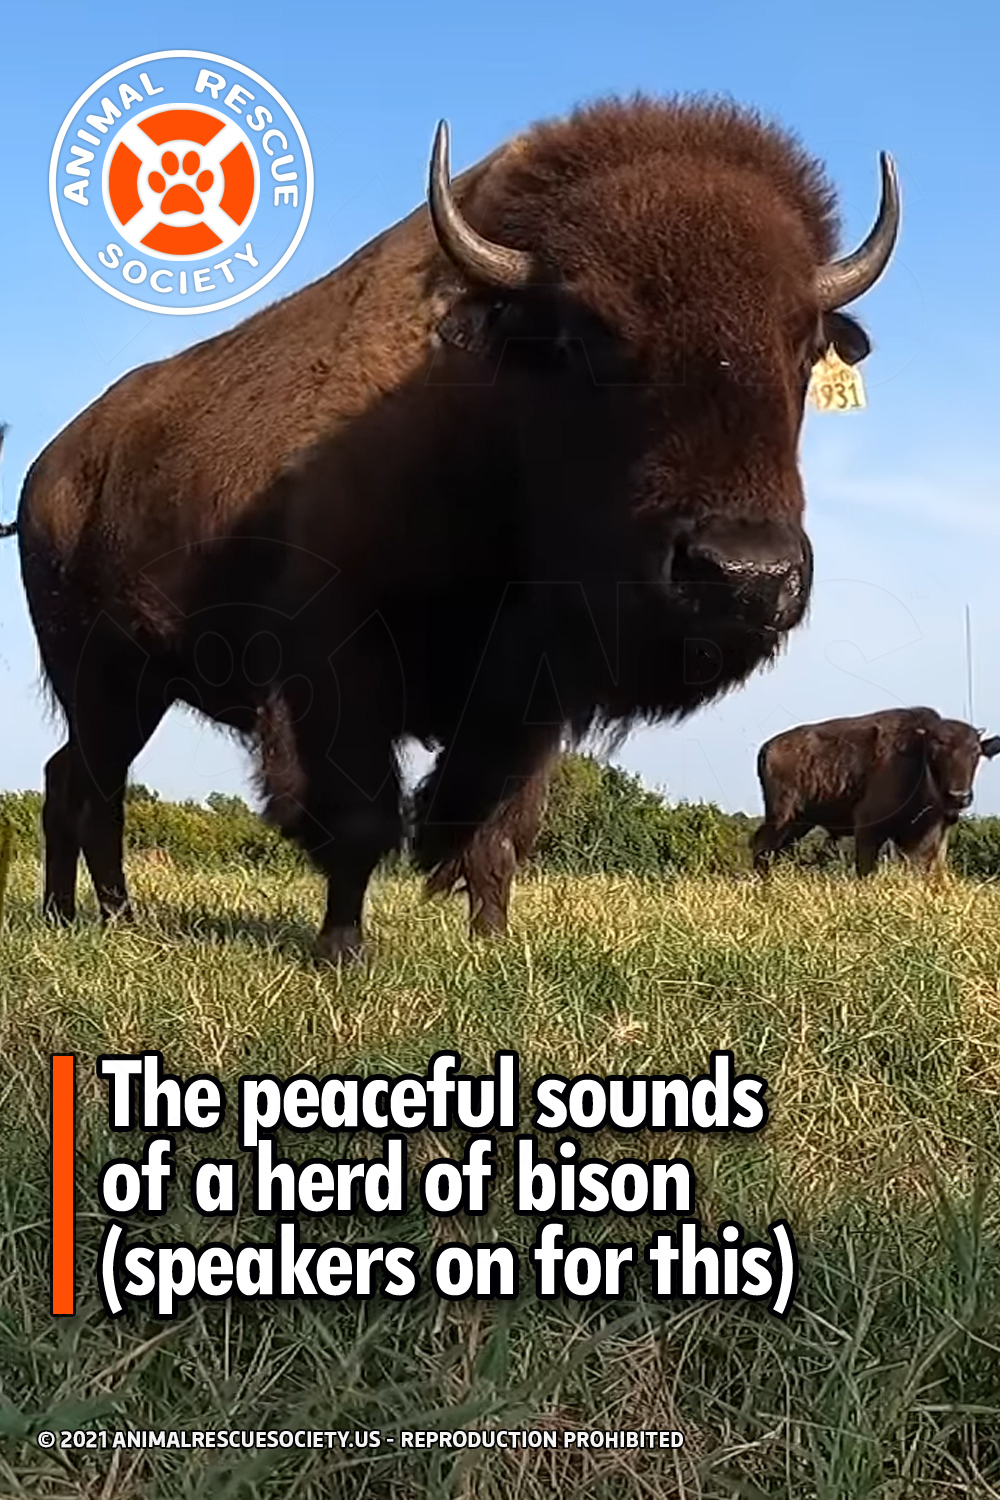 The peaceful sounds of a herd of bison (speakers on for this)